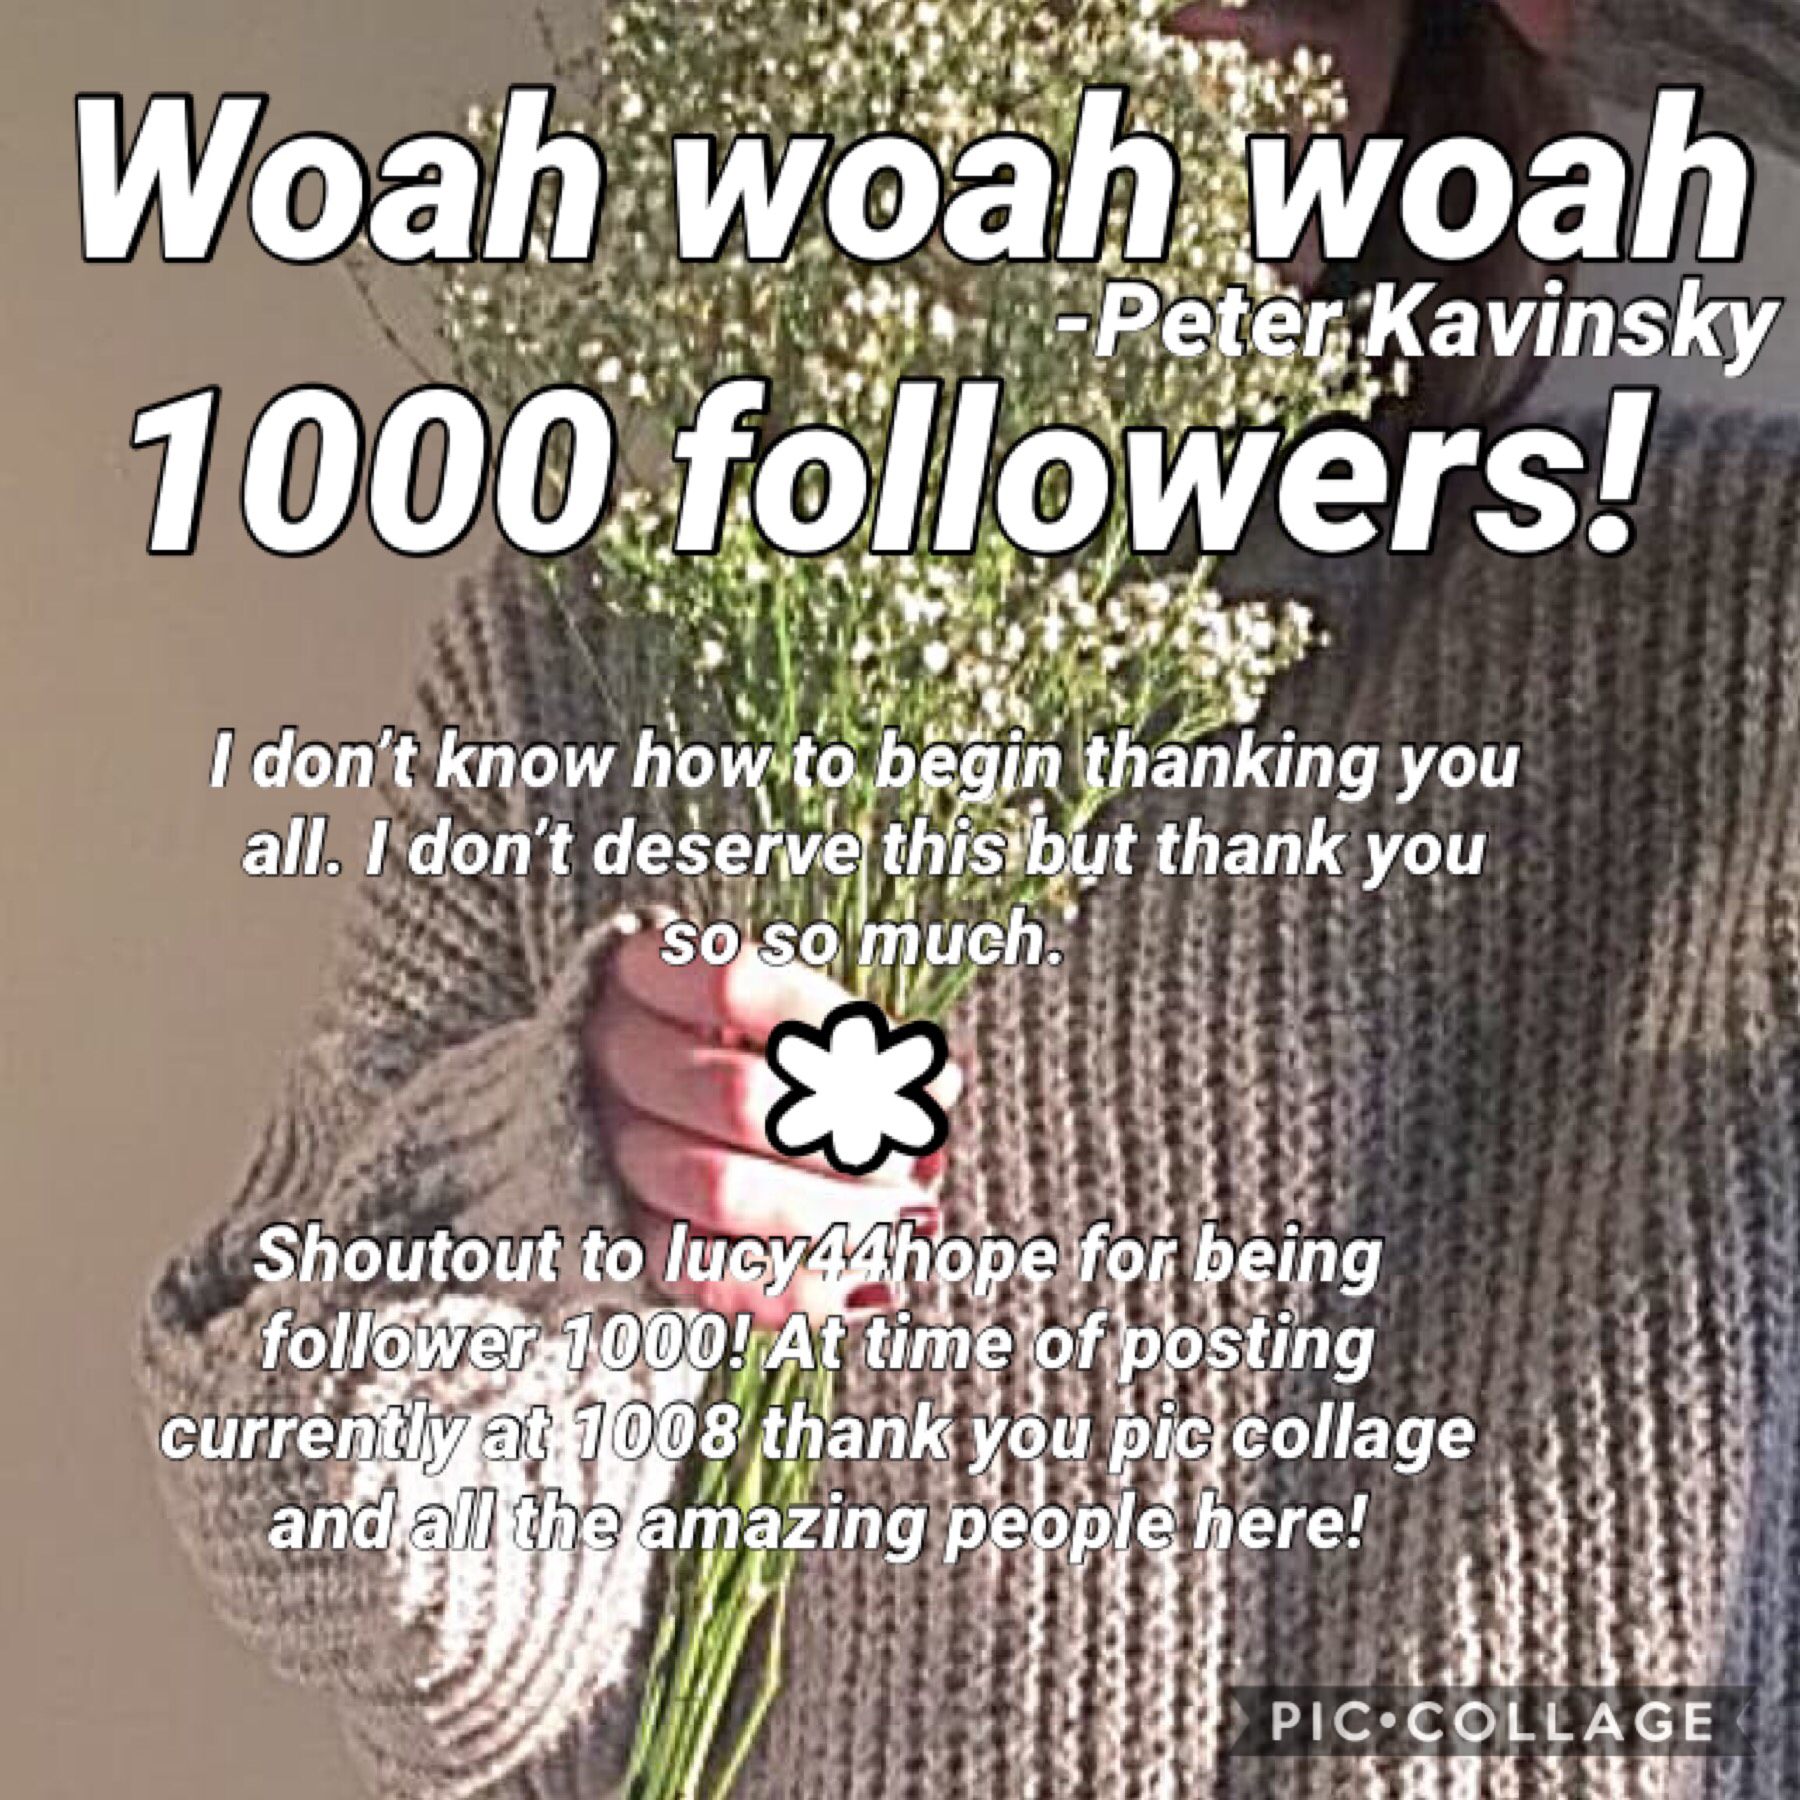 Thank you so so much!!! I'll post a contest soon to commemorate